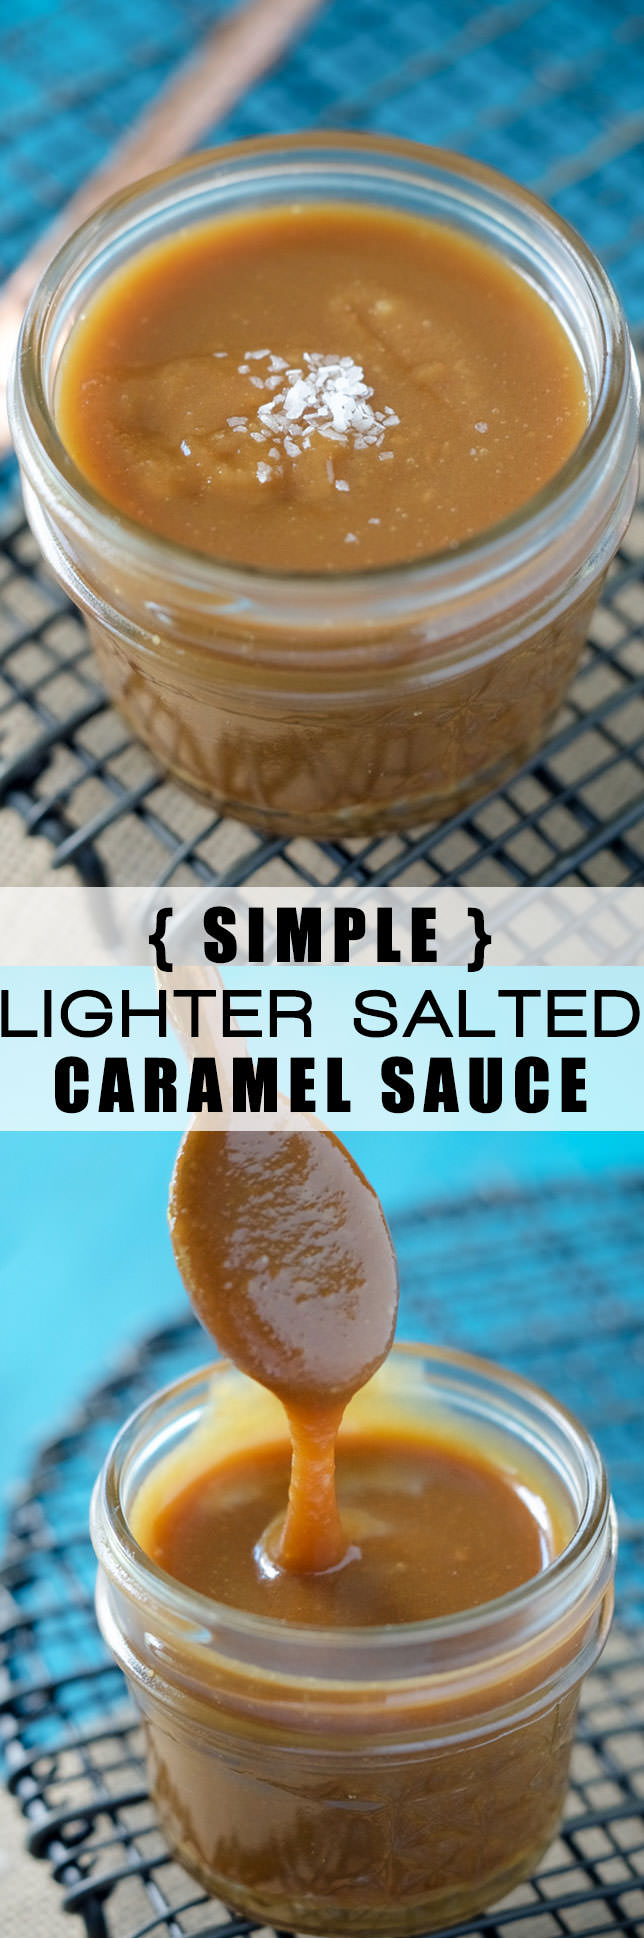 This Lighter Salted Caramel Sauce couldn't be any easier to make and is lightened up! Perfect for drizzling over ice cream, cake or just by the spoonful!